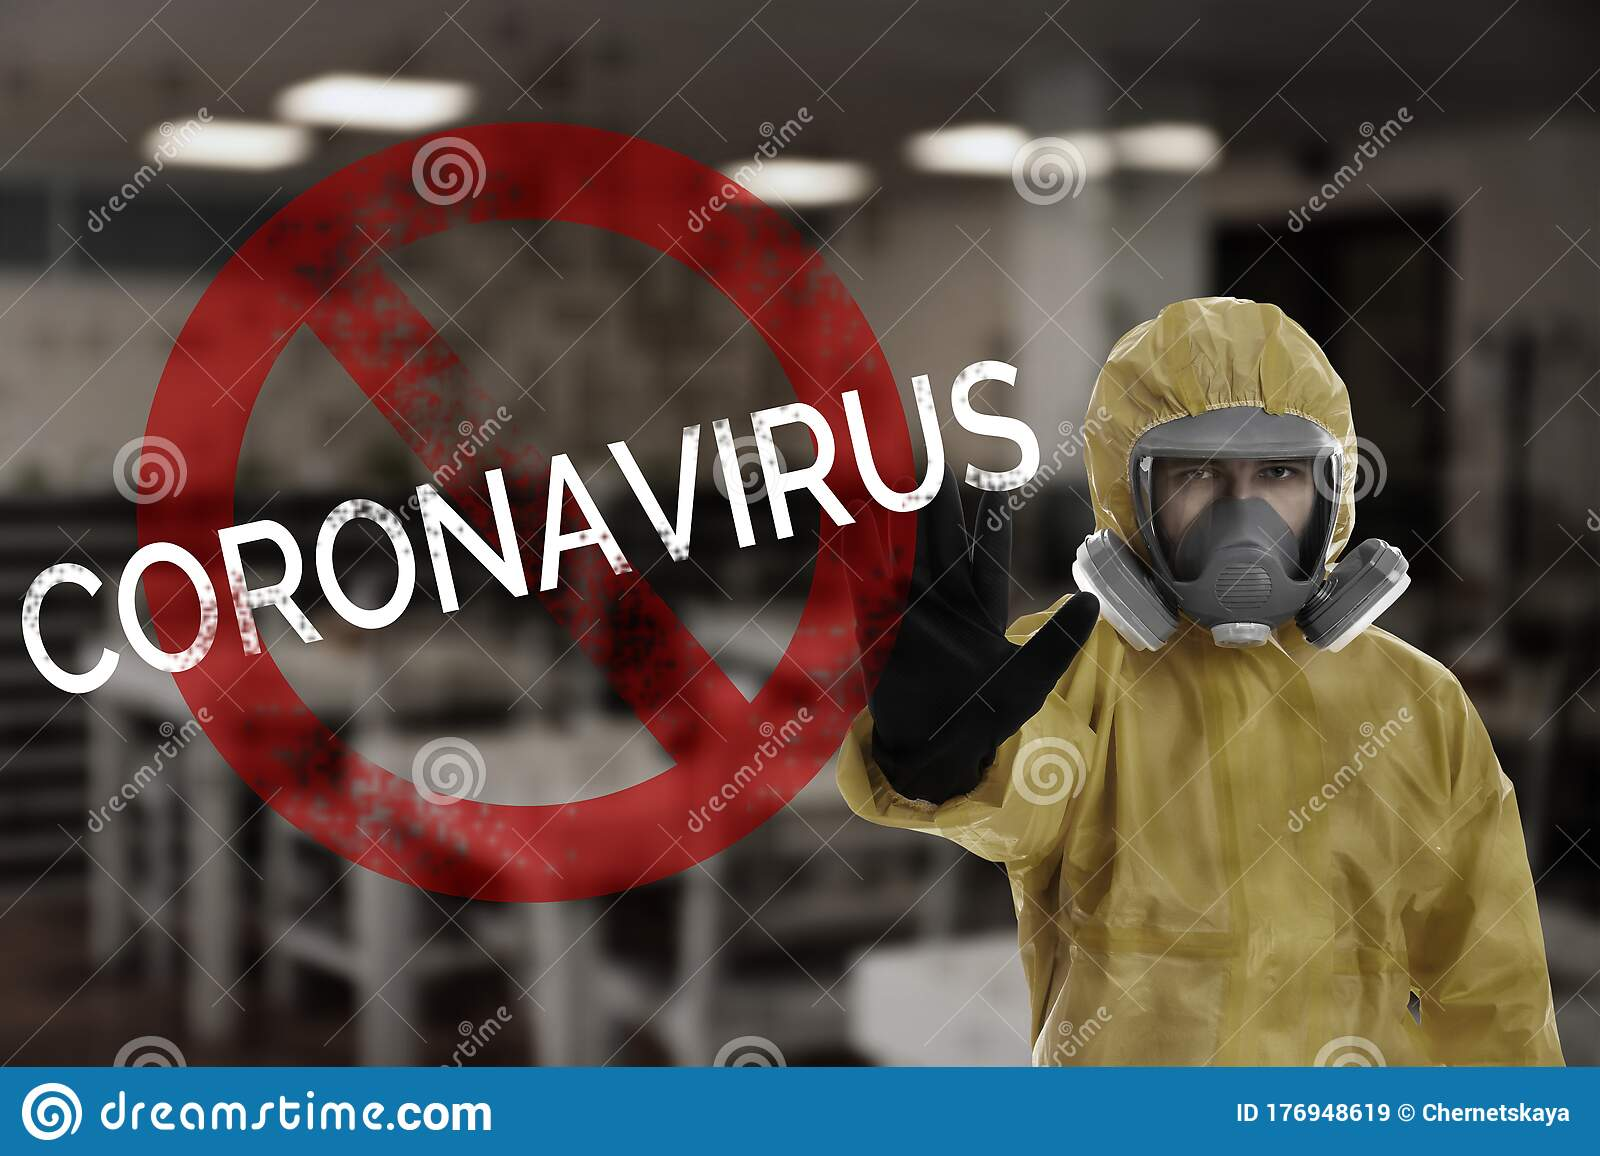 Man In Chemical Protective Suit Showing STOP Gesture. Prevention Of Virus Spread Stock Image - Image of coronavirus. 19ncov: 176948619